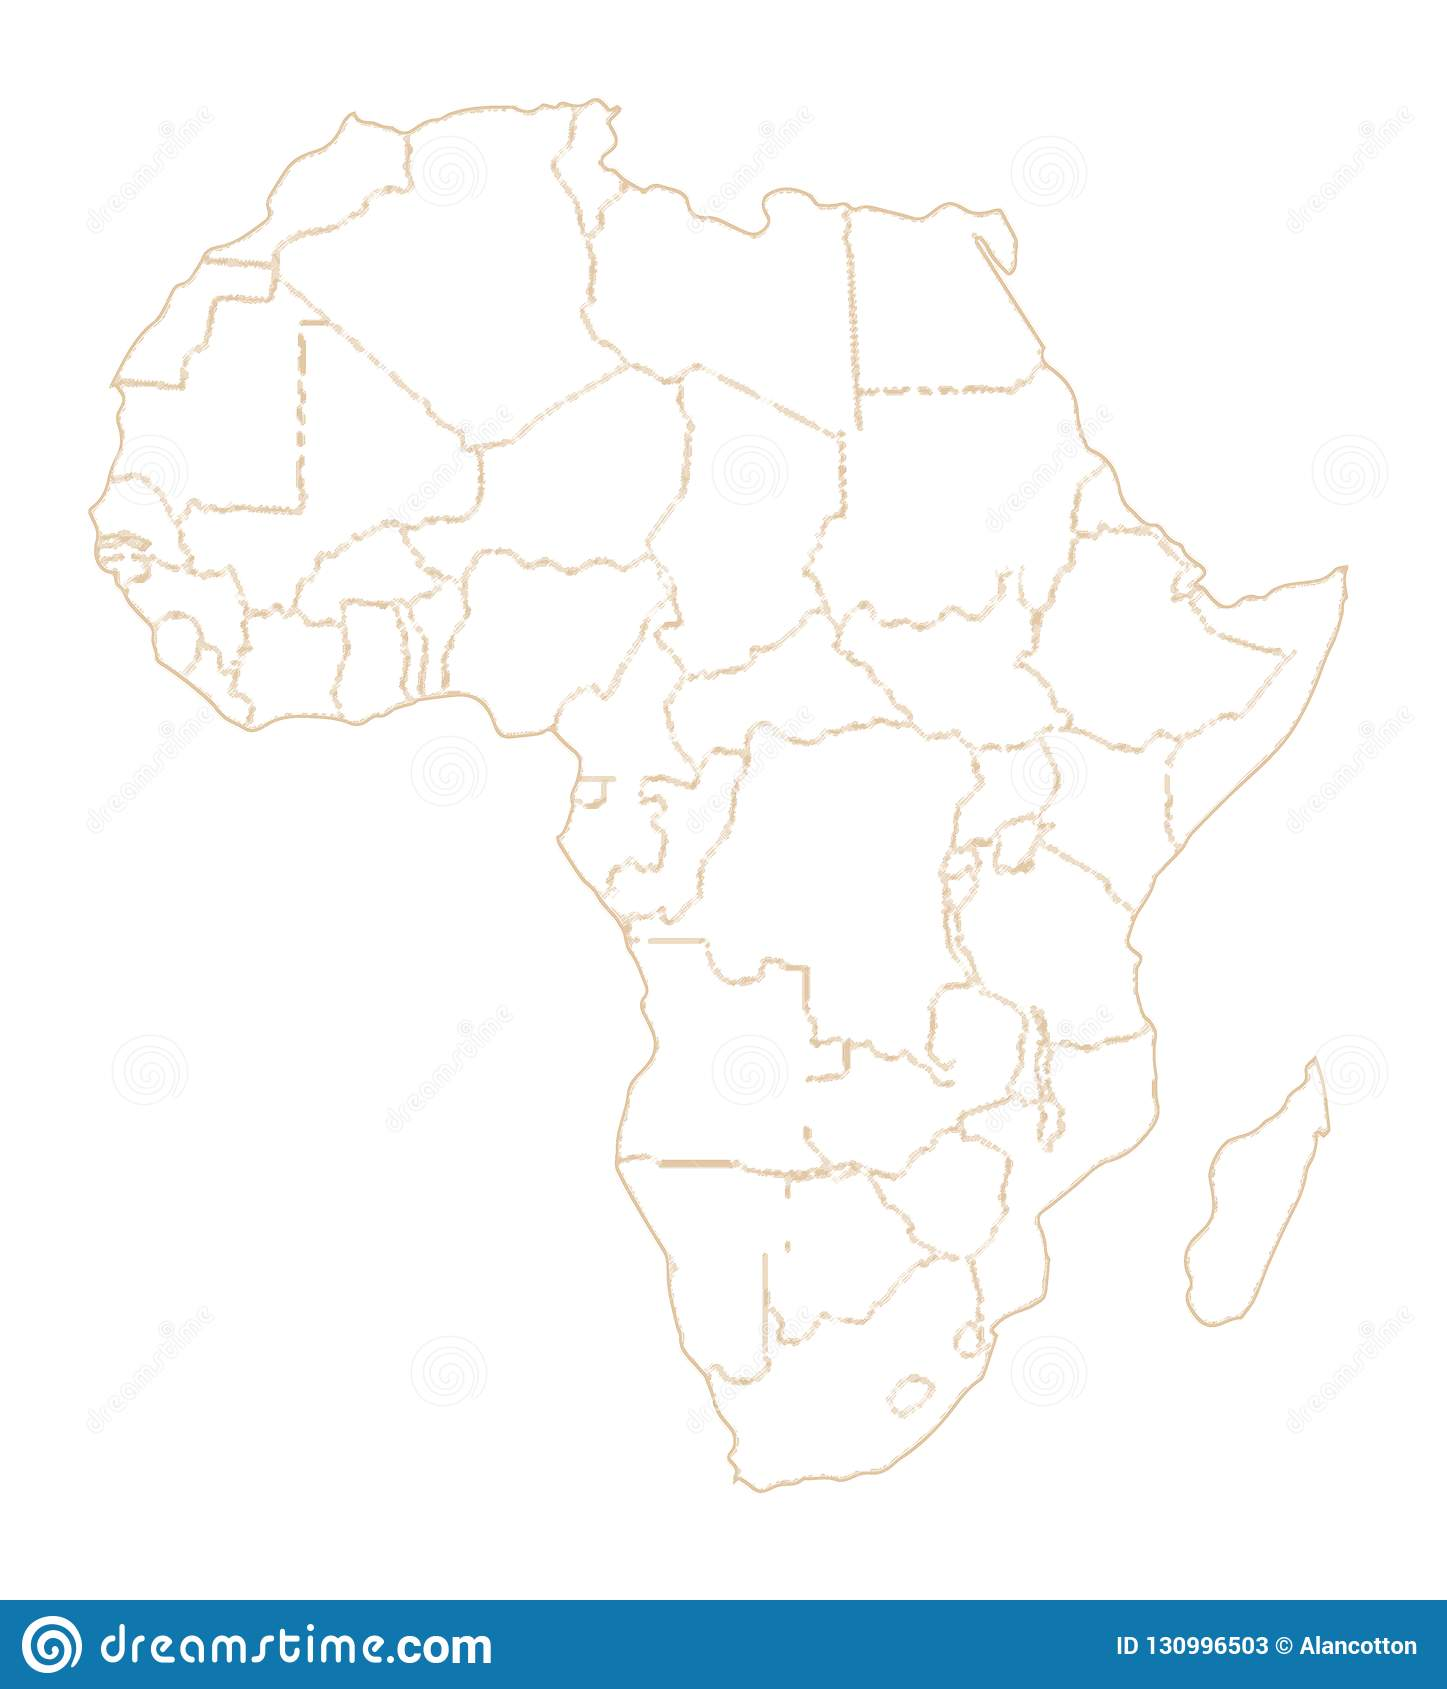 Picture of: Africa Country Outlines Stock Illustration Illustration Of African 130996503